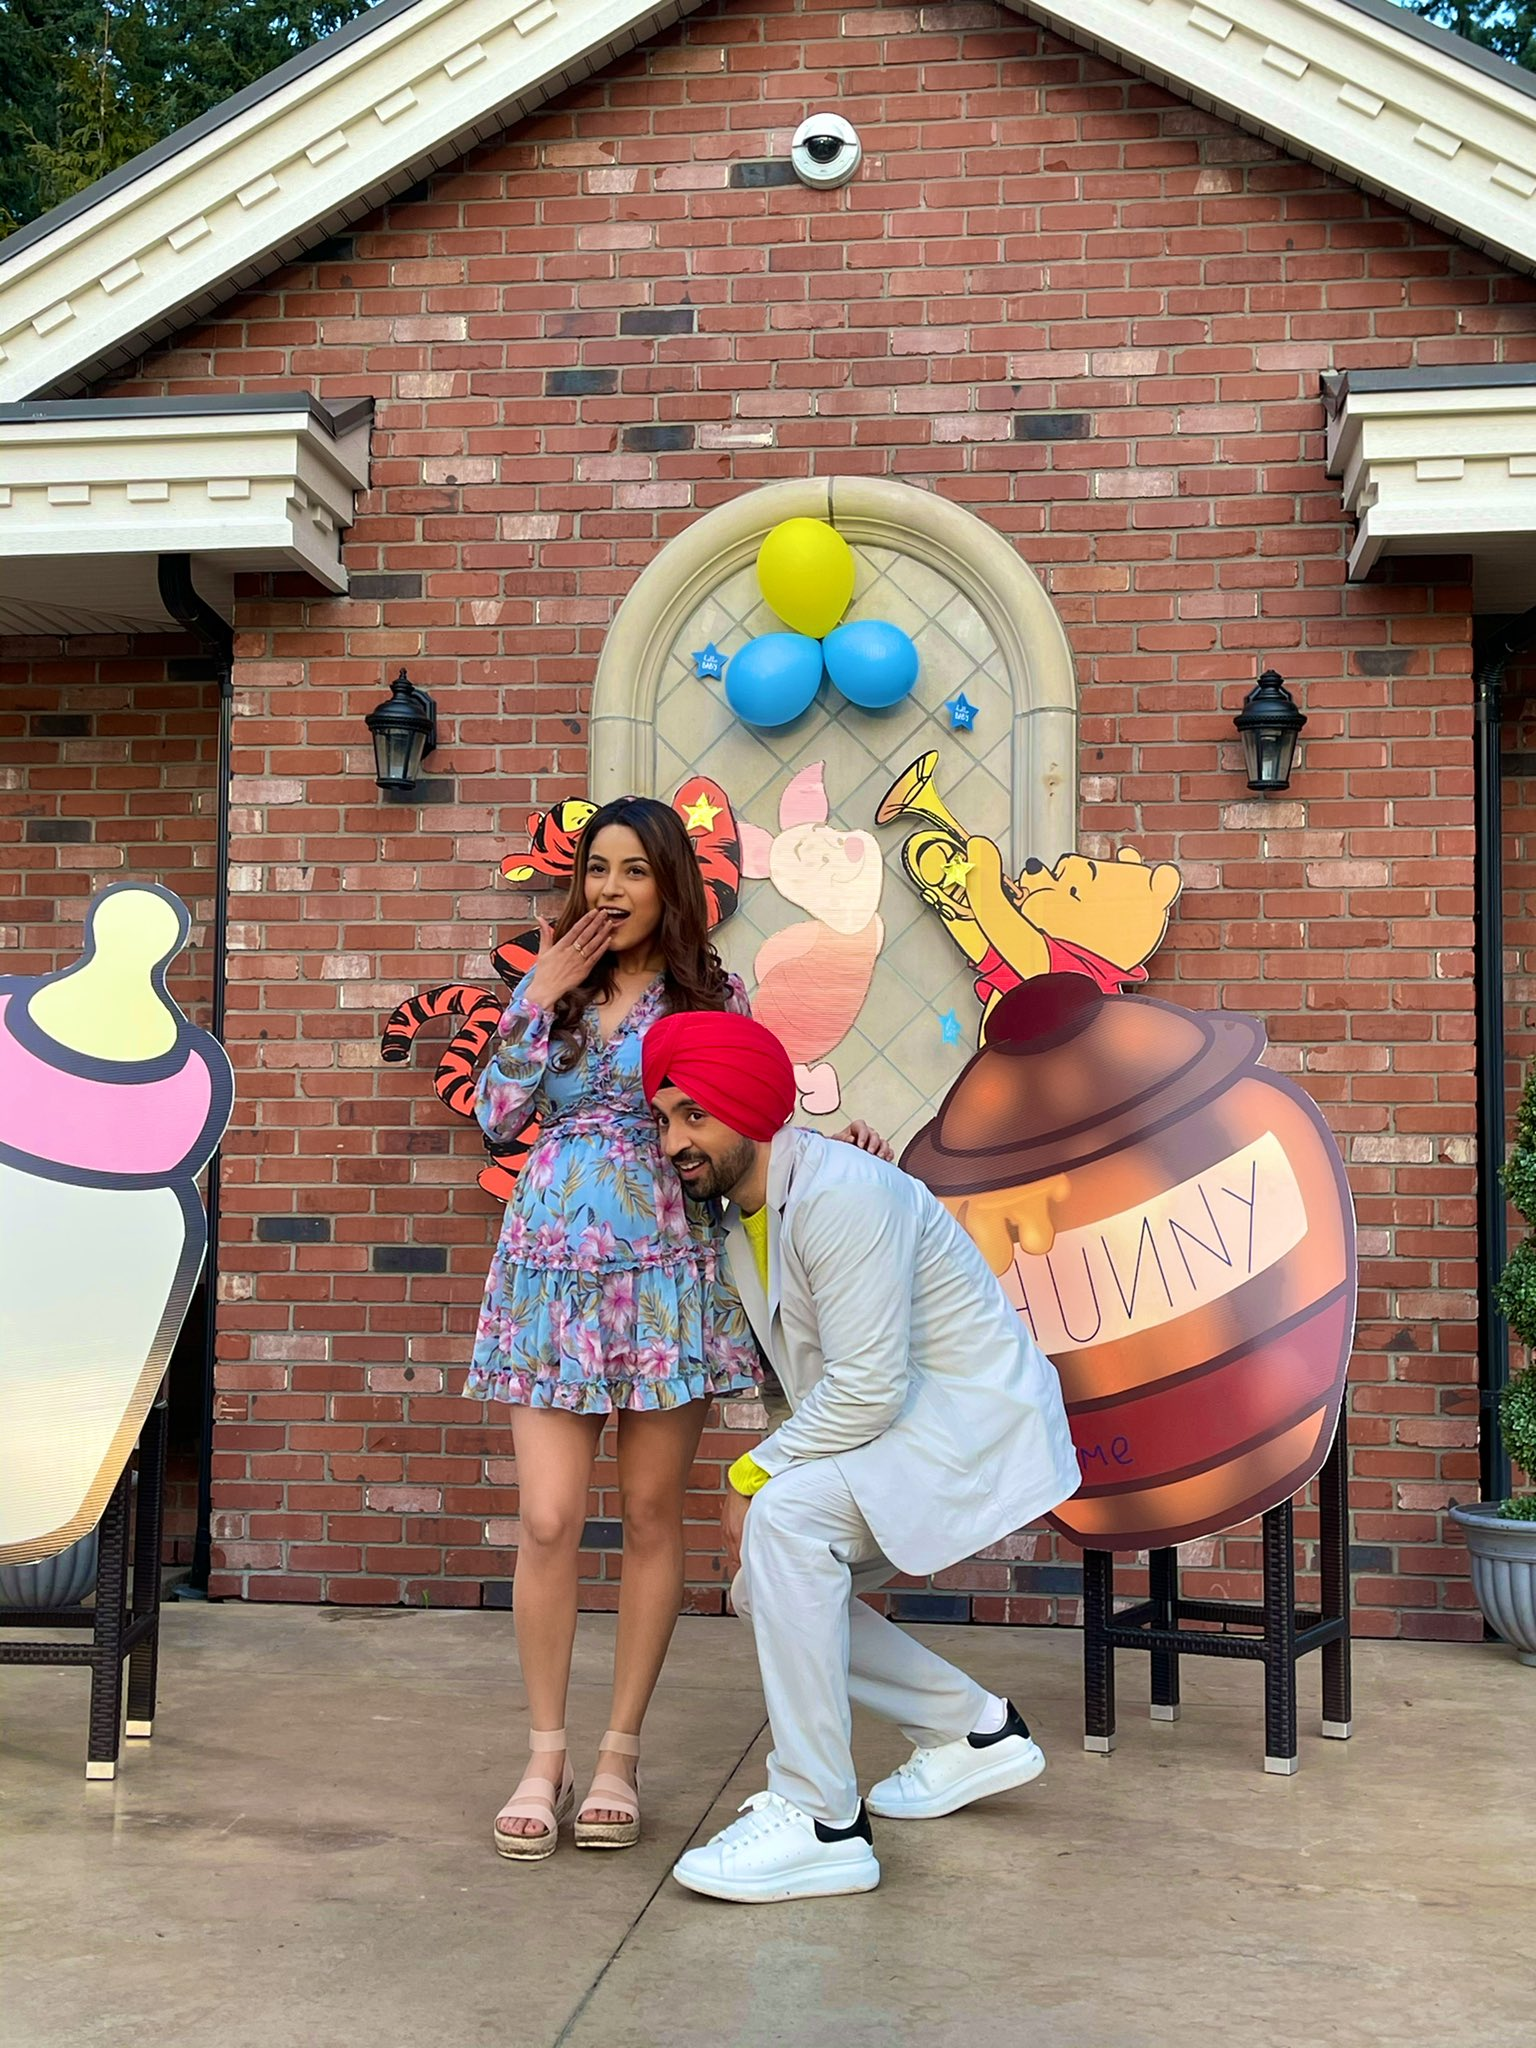 Bigg Boss 13 contestant Shehnaaz Gill is excited for Honsla Rakh opposite Diljit Dosanjh. Sharing excitement, she shared picture with Diljit.